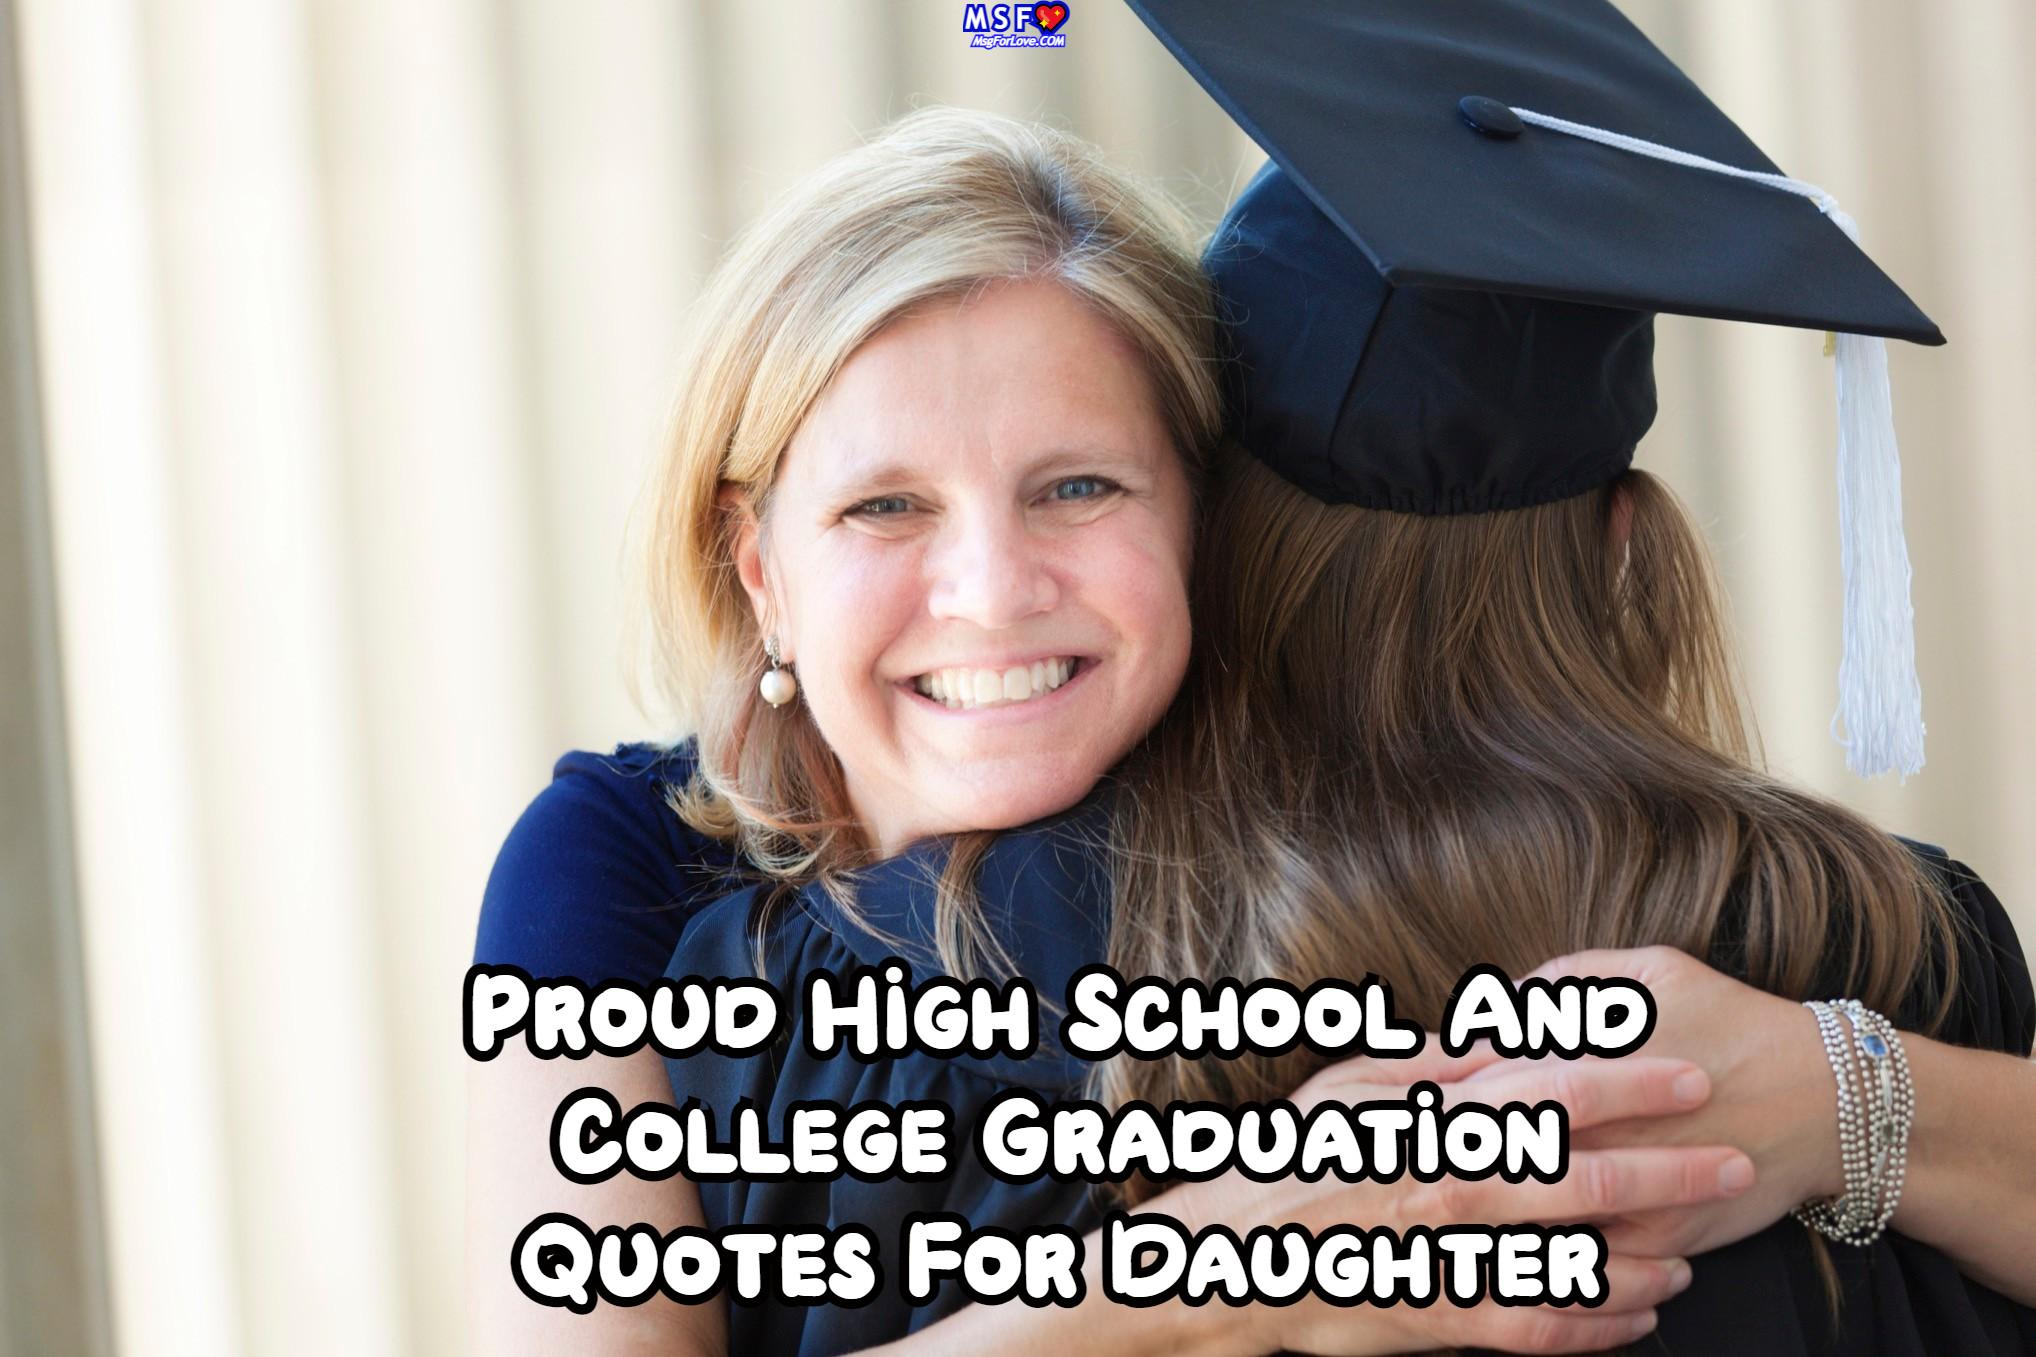 Graduation Quotes For Daughter